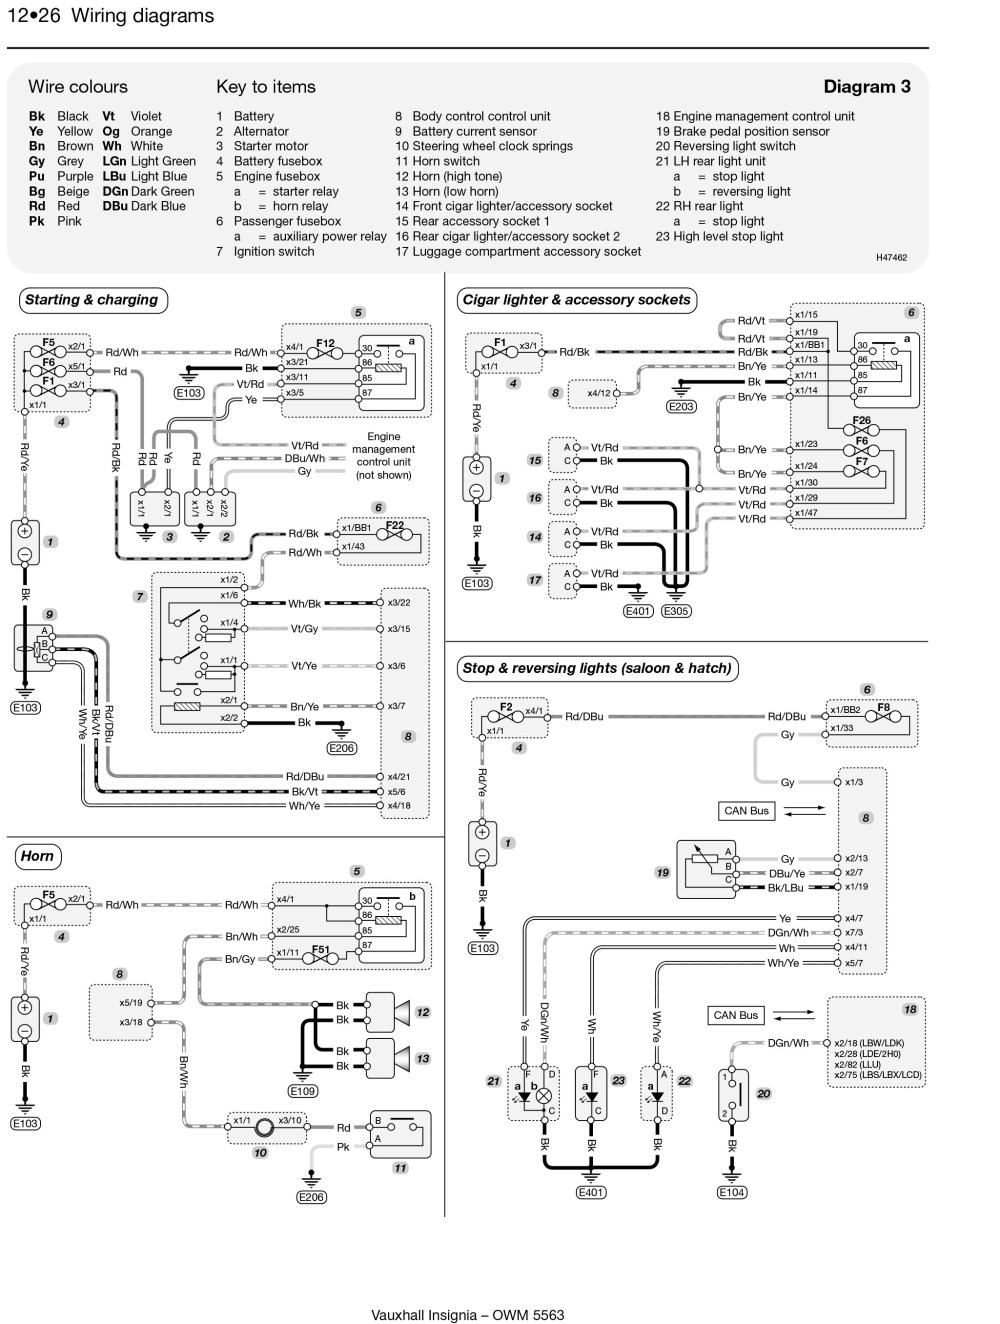 medium resolution of vauxhall insignia wiring diagram